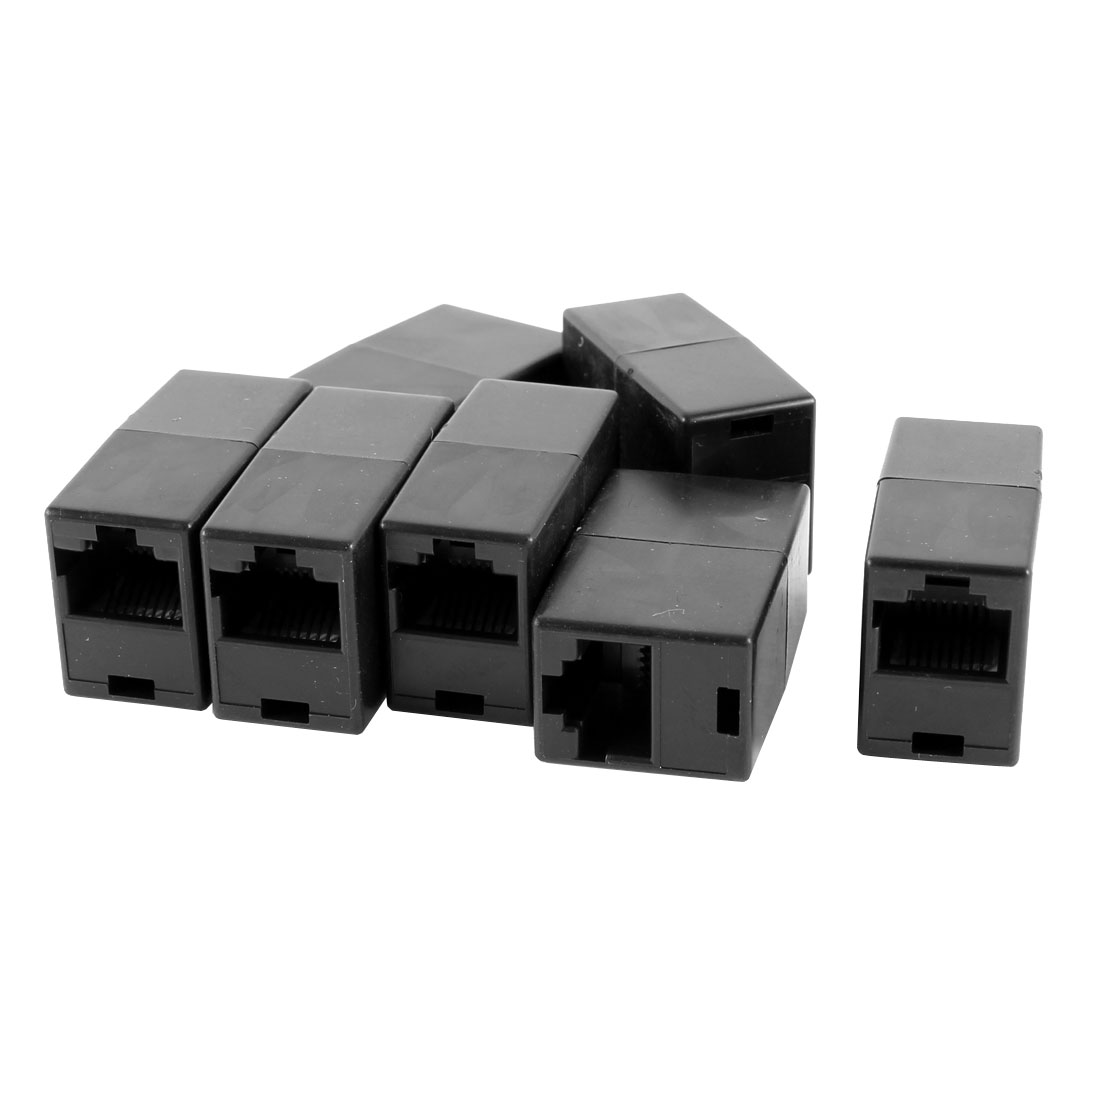 7 Pcs Black 8P8C RJ45 to RJ45 Female/Female Ethernet Inline Connector Coupler